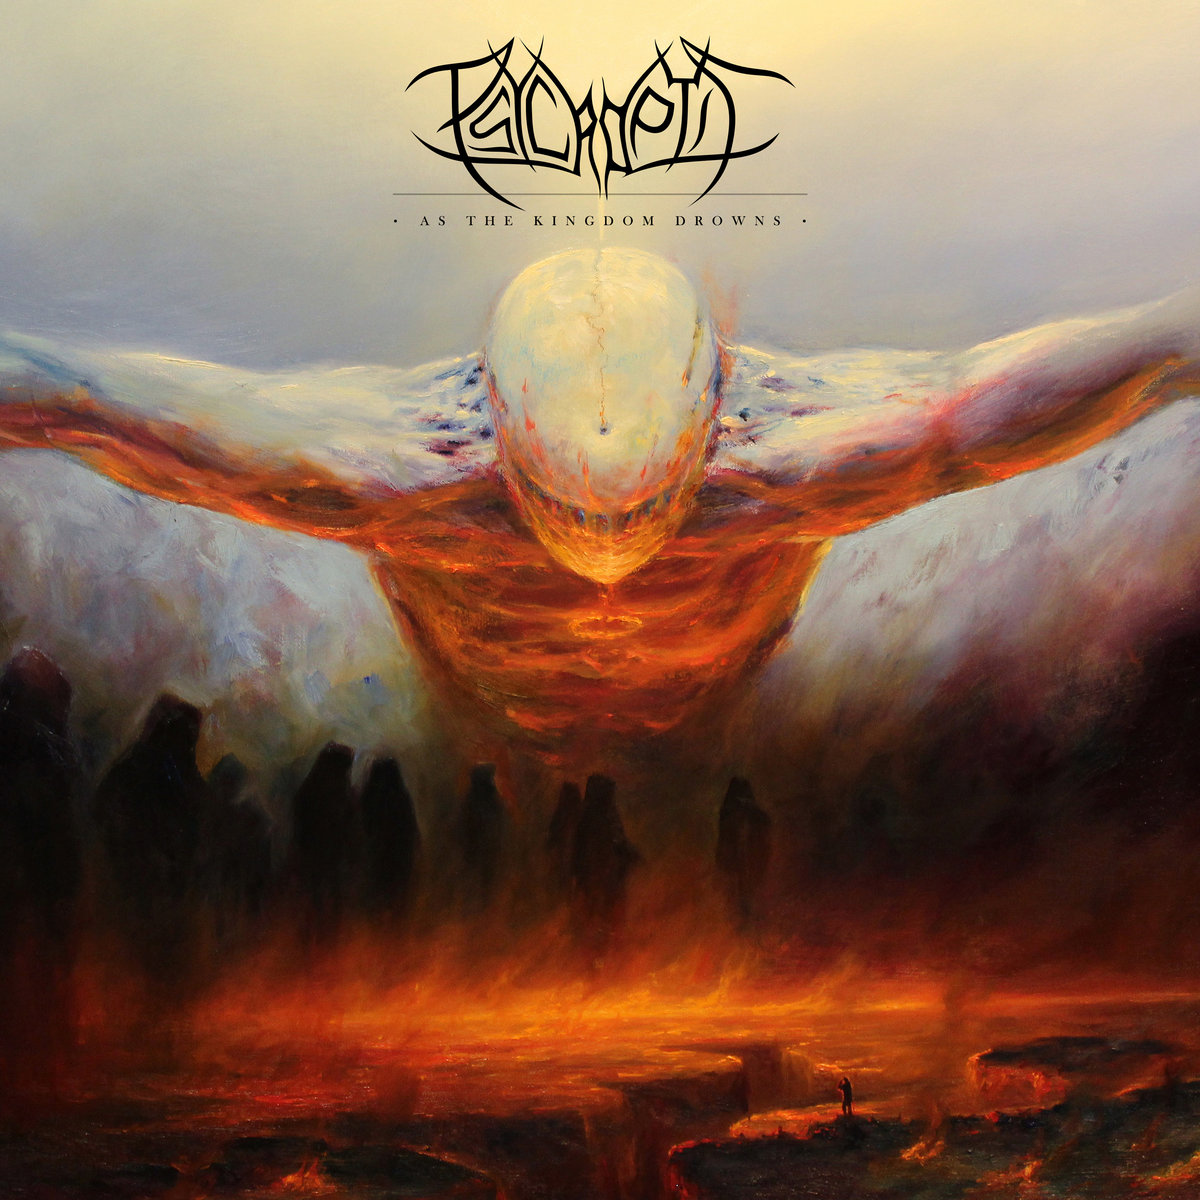 11. Psycroptic - As the Kingdom Drowns - Clinical and catchy - Psycroptic bring their absolute A-game with As the Kingdom Drowns. Never before have they sounded so furious, frenzied and yet, evocative and majestic. There is a depth to this album that is palpable and brought about by bold experimental leaps (e.g. operatic vocals overlaid with death metal growls) which is also a sign of successful execution.